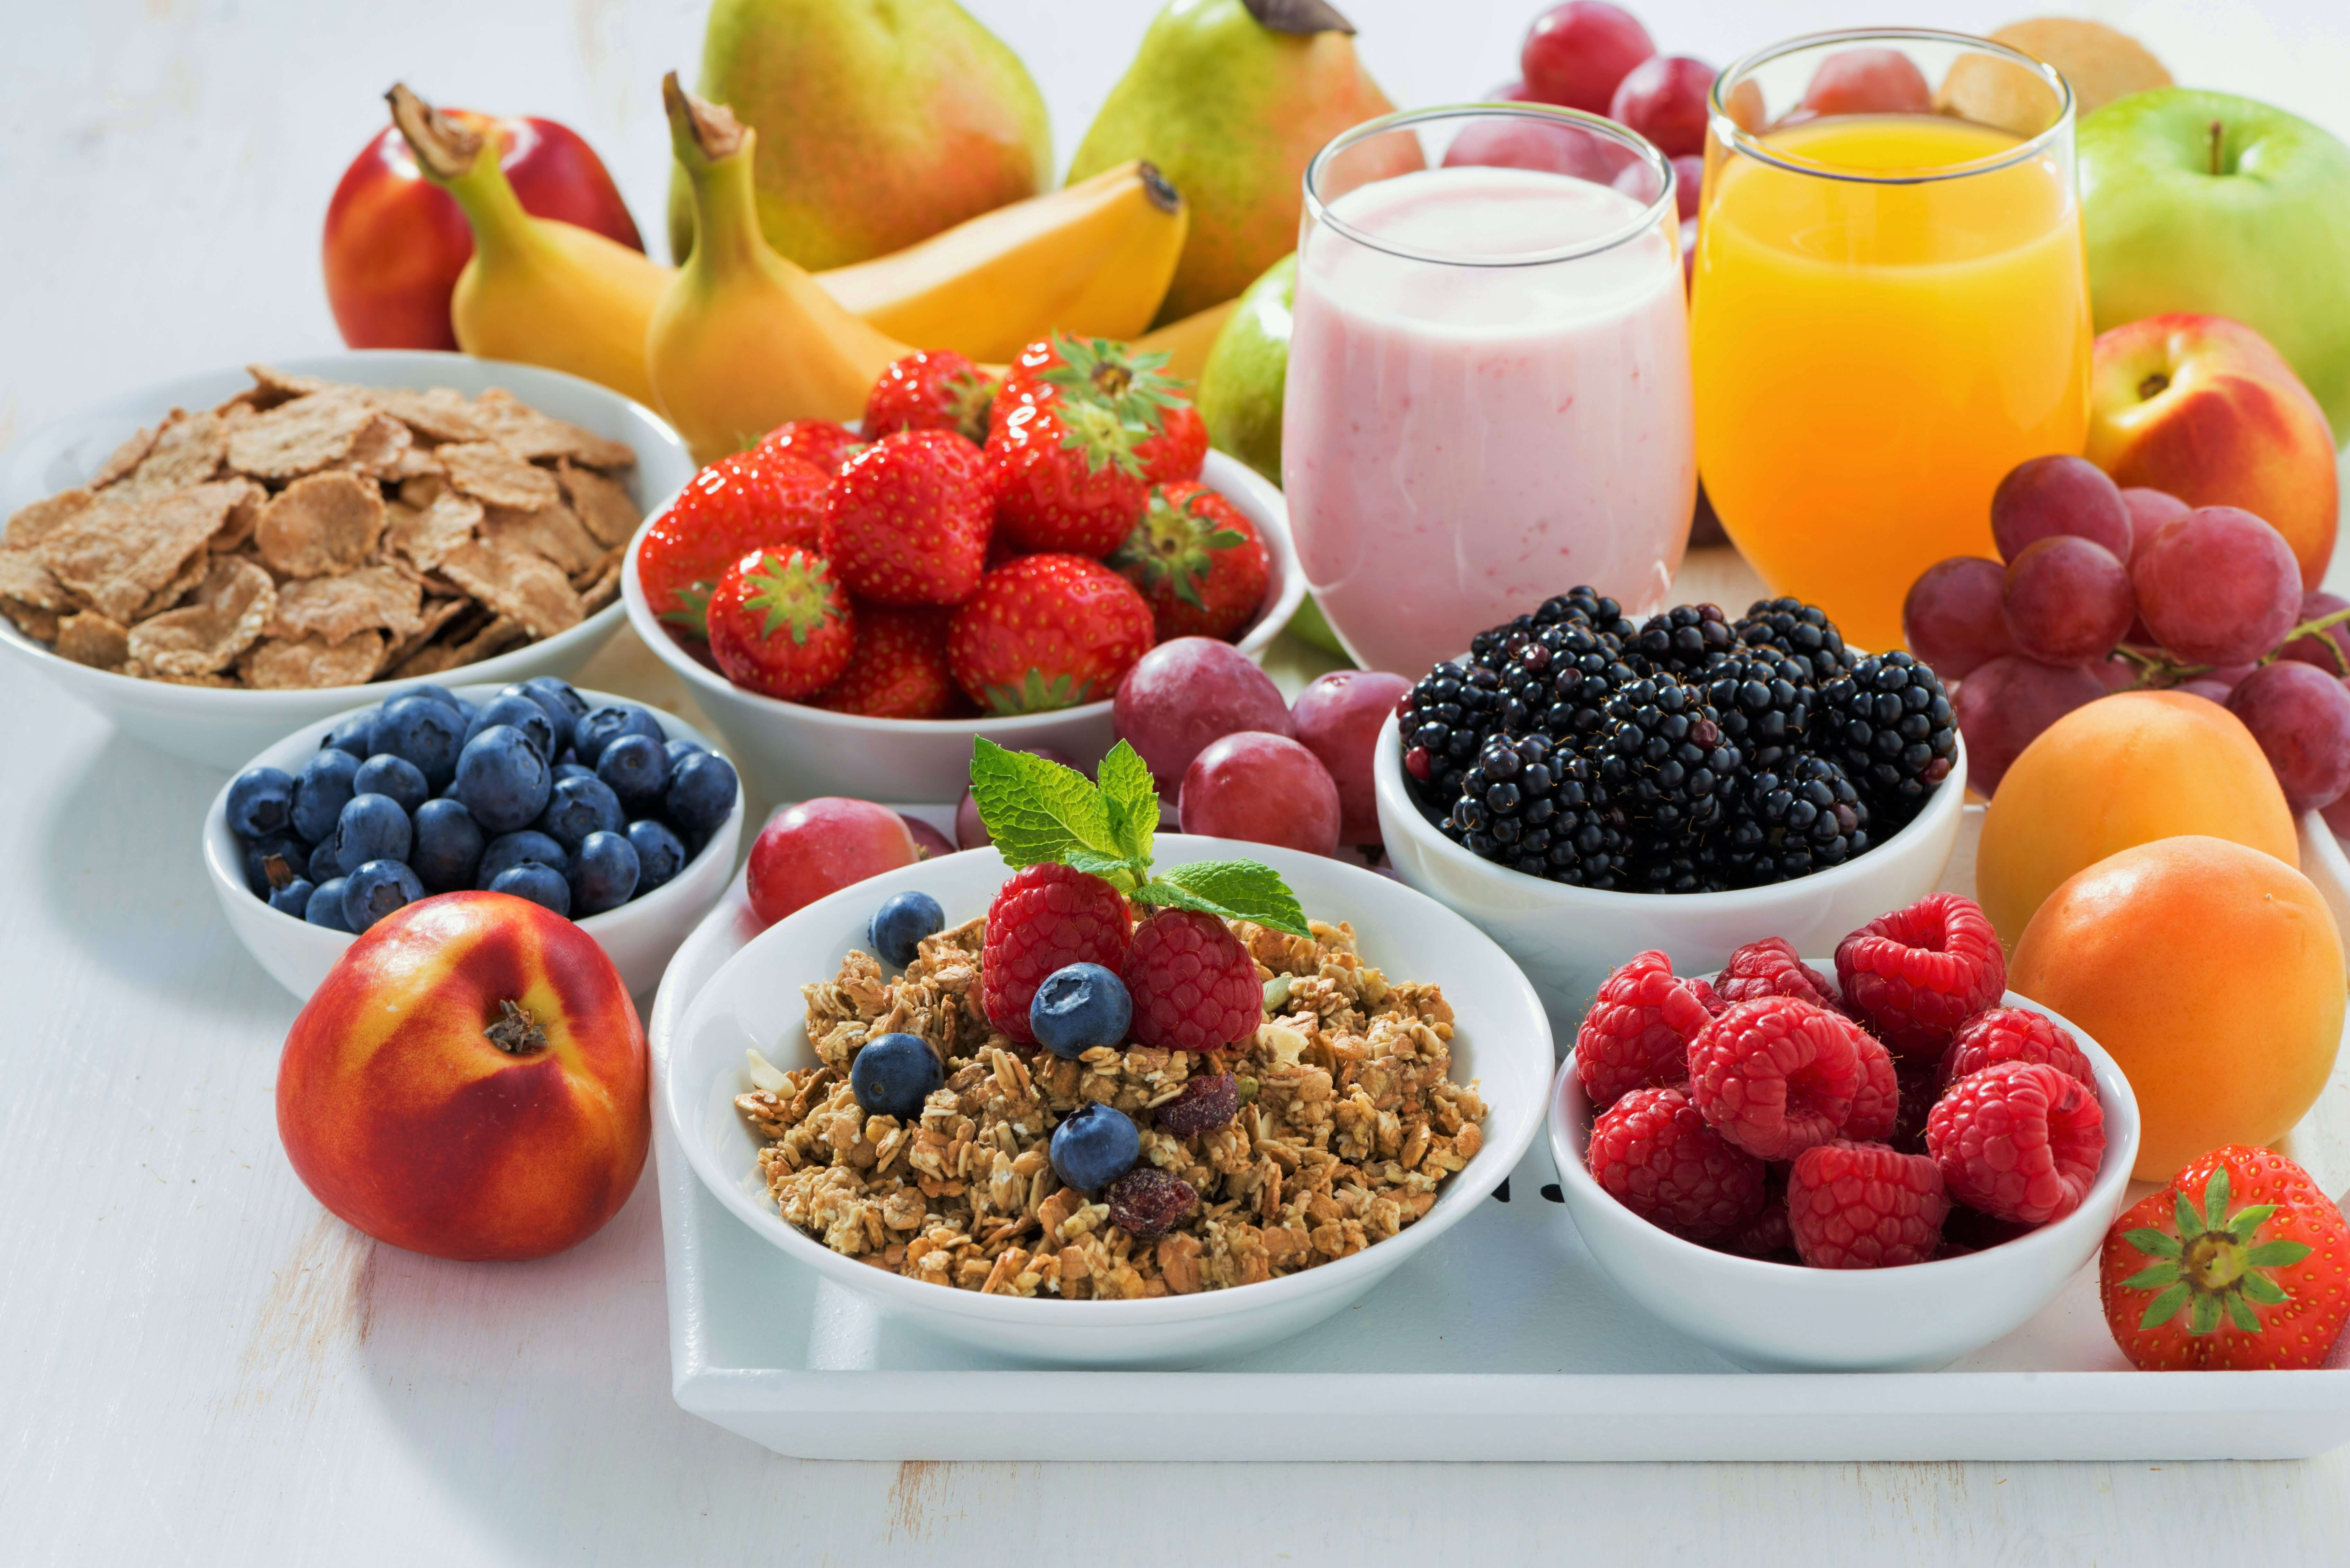 healthy breakfast With these healthy breakfast smoothies, your breakfast can be quick, delicious, and – more important – give you the fuel you need to start the day strong.